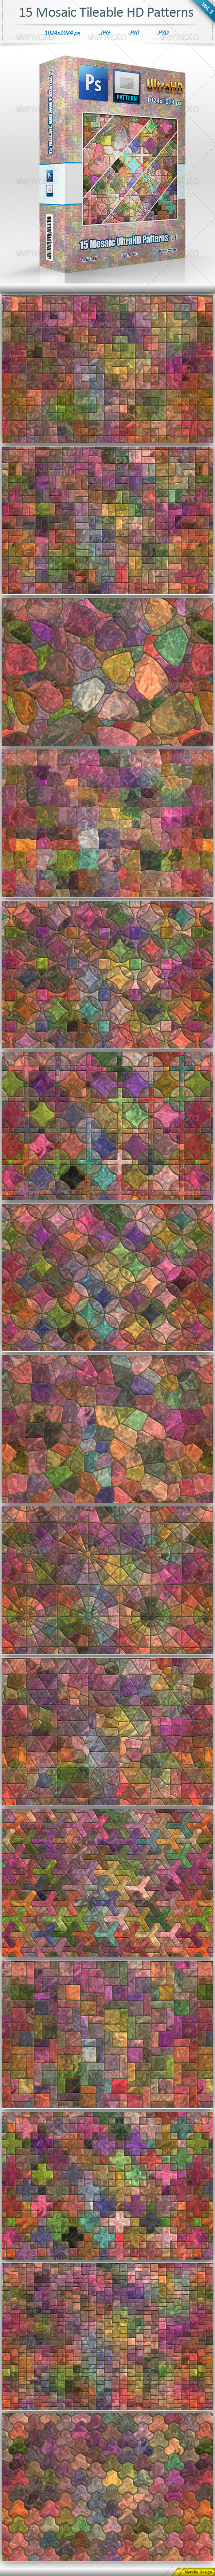 GraphicRiver Mosaic Tileable Patterns vol 1 8535131